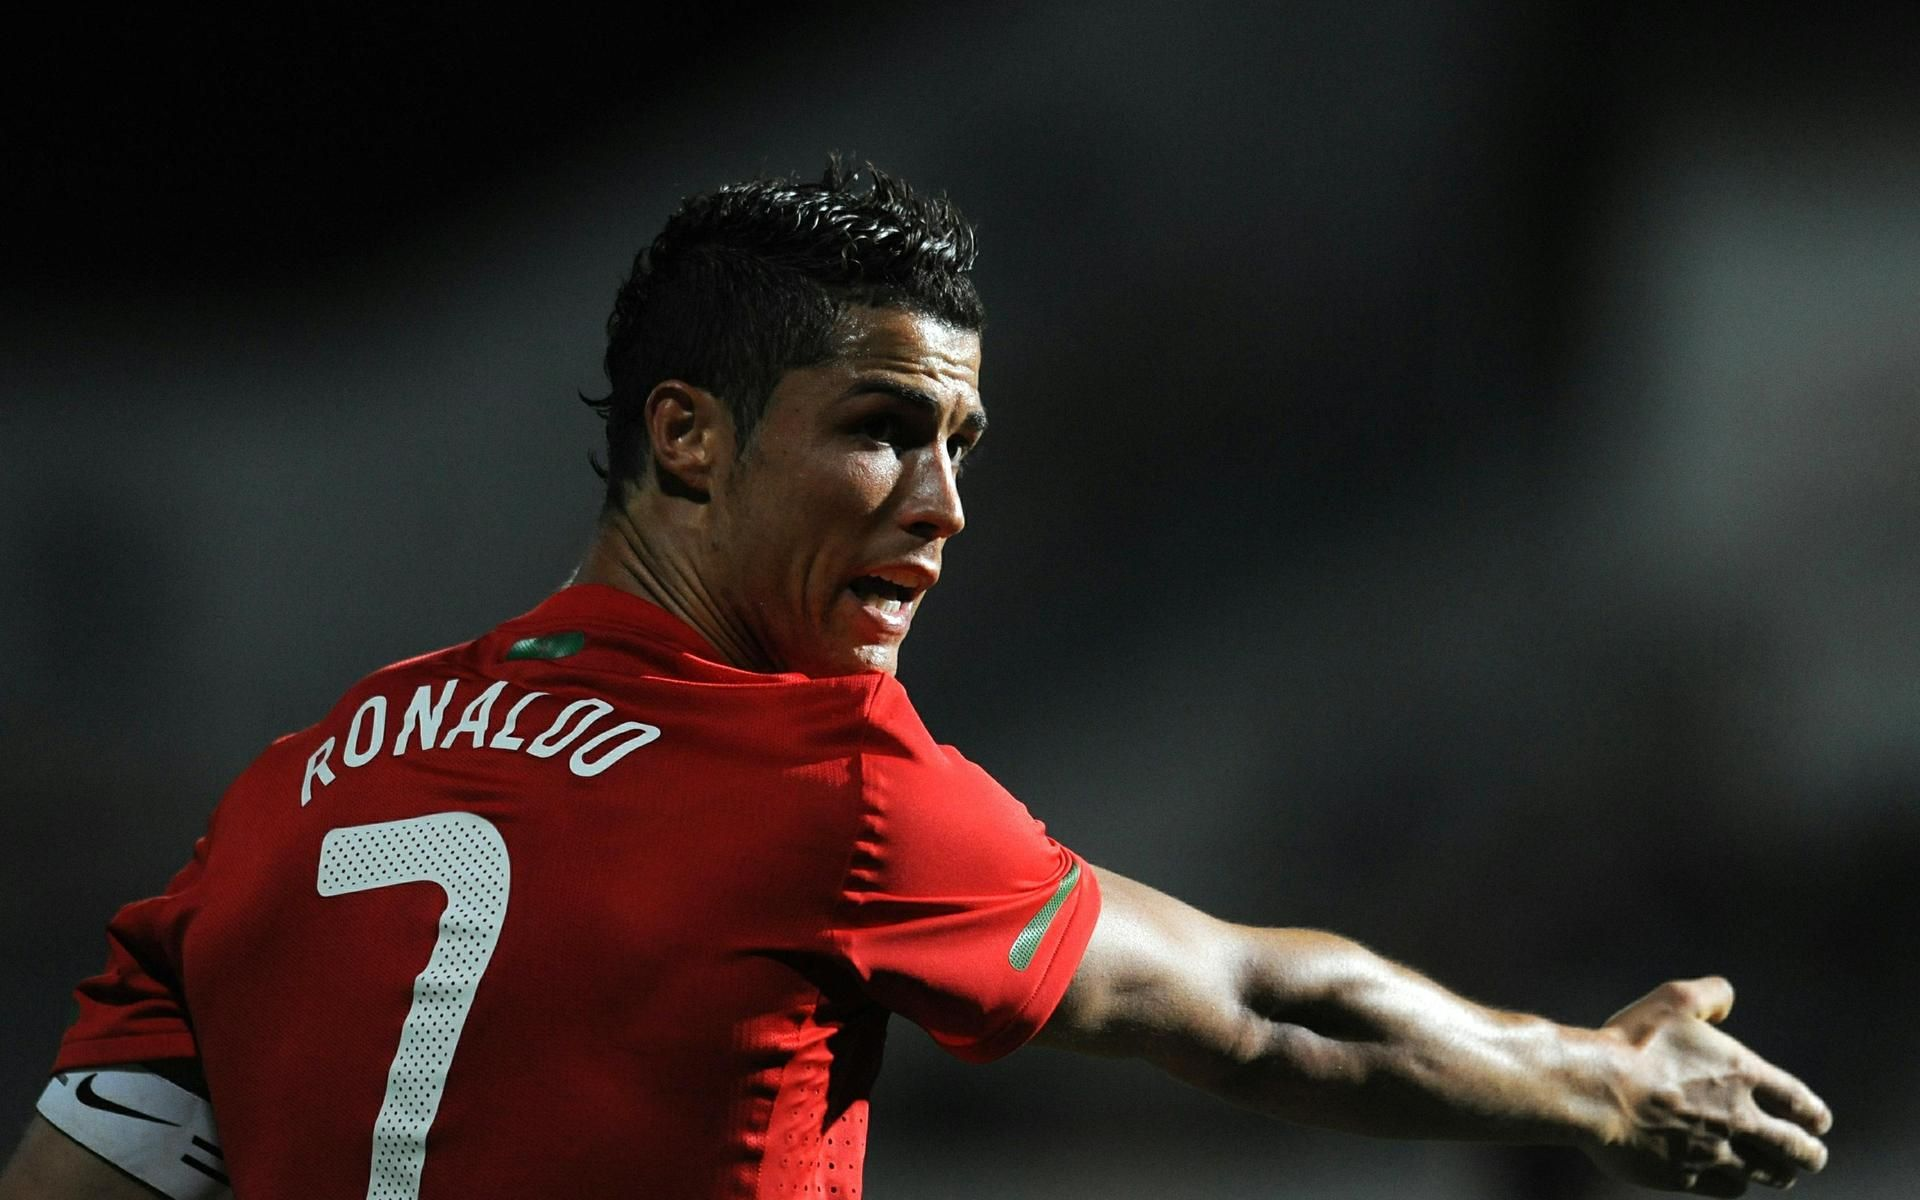 cristiano ronaldo hd wallpapers collection for free download